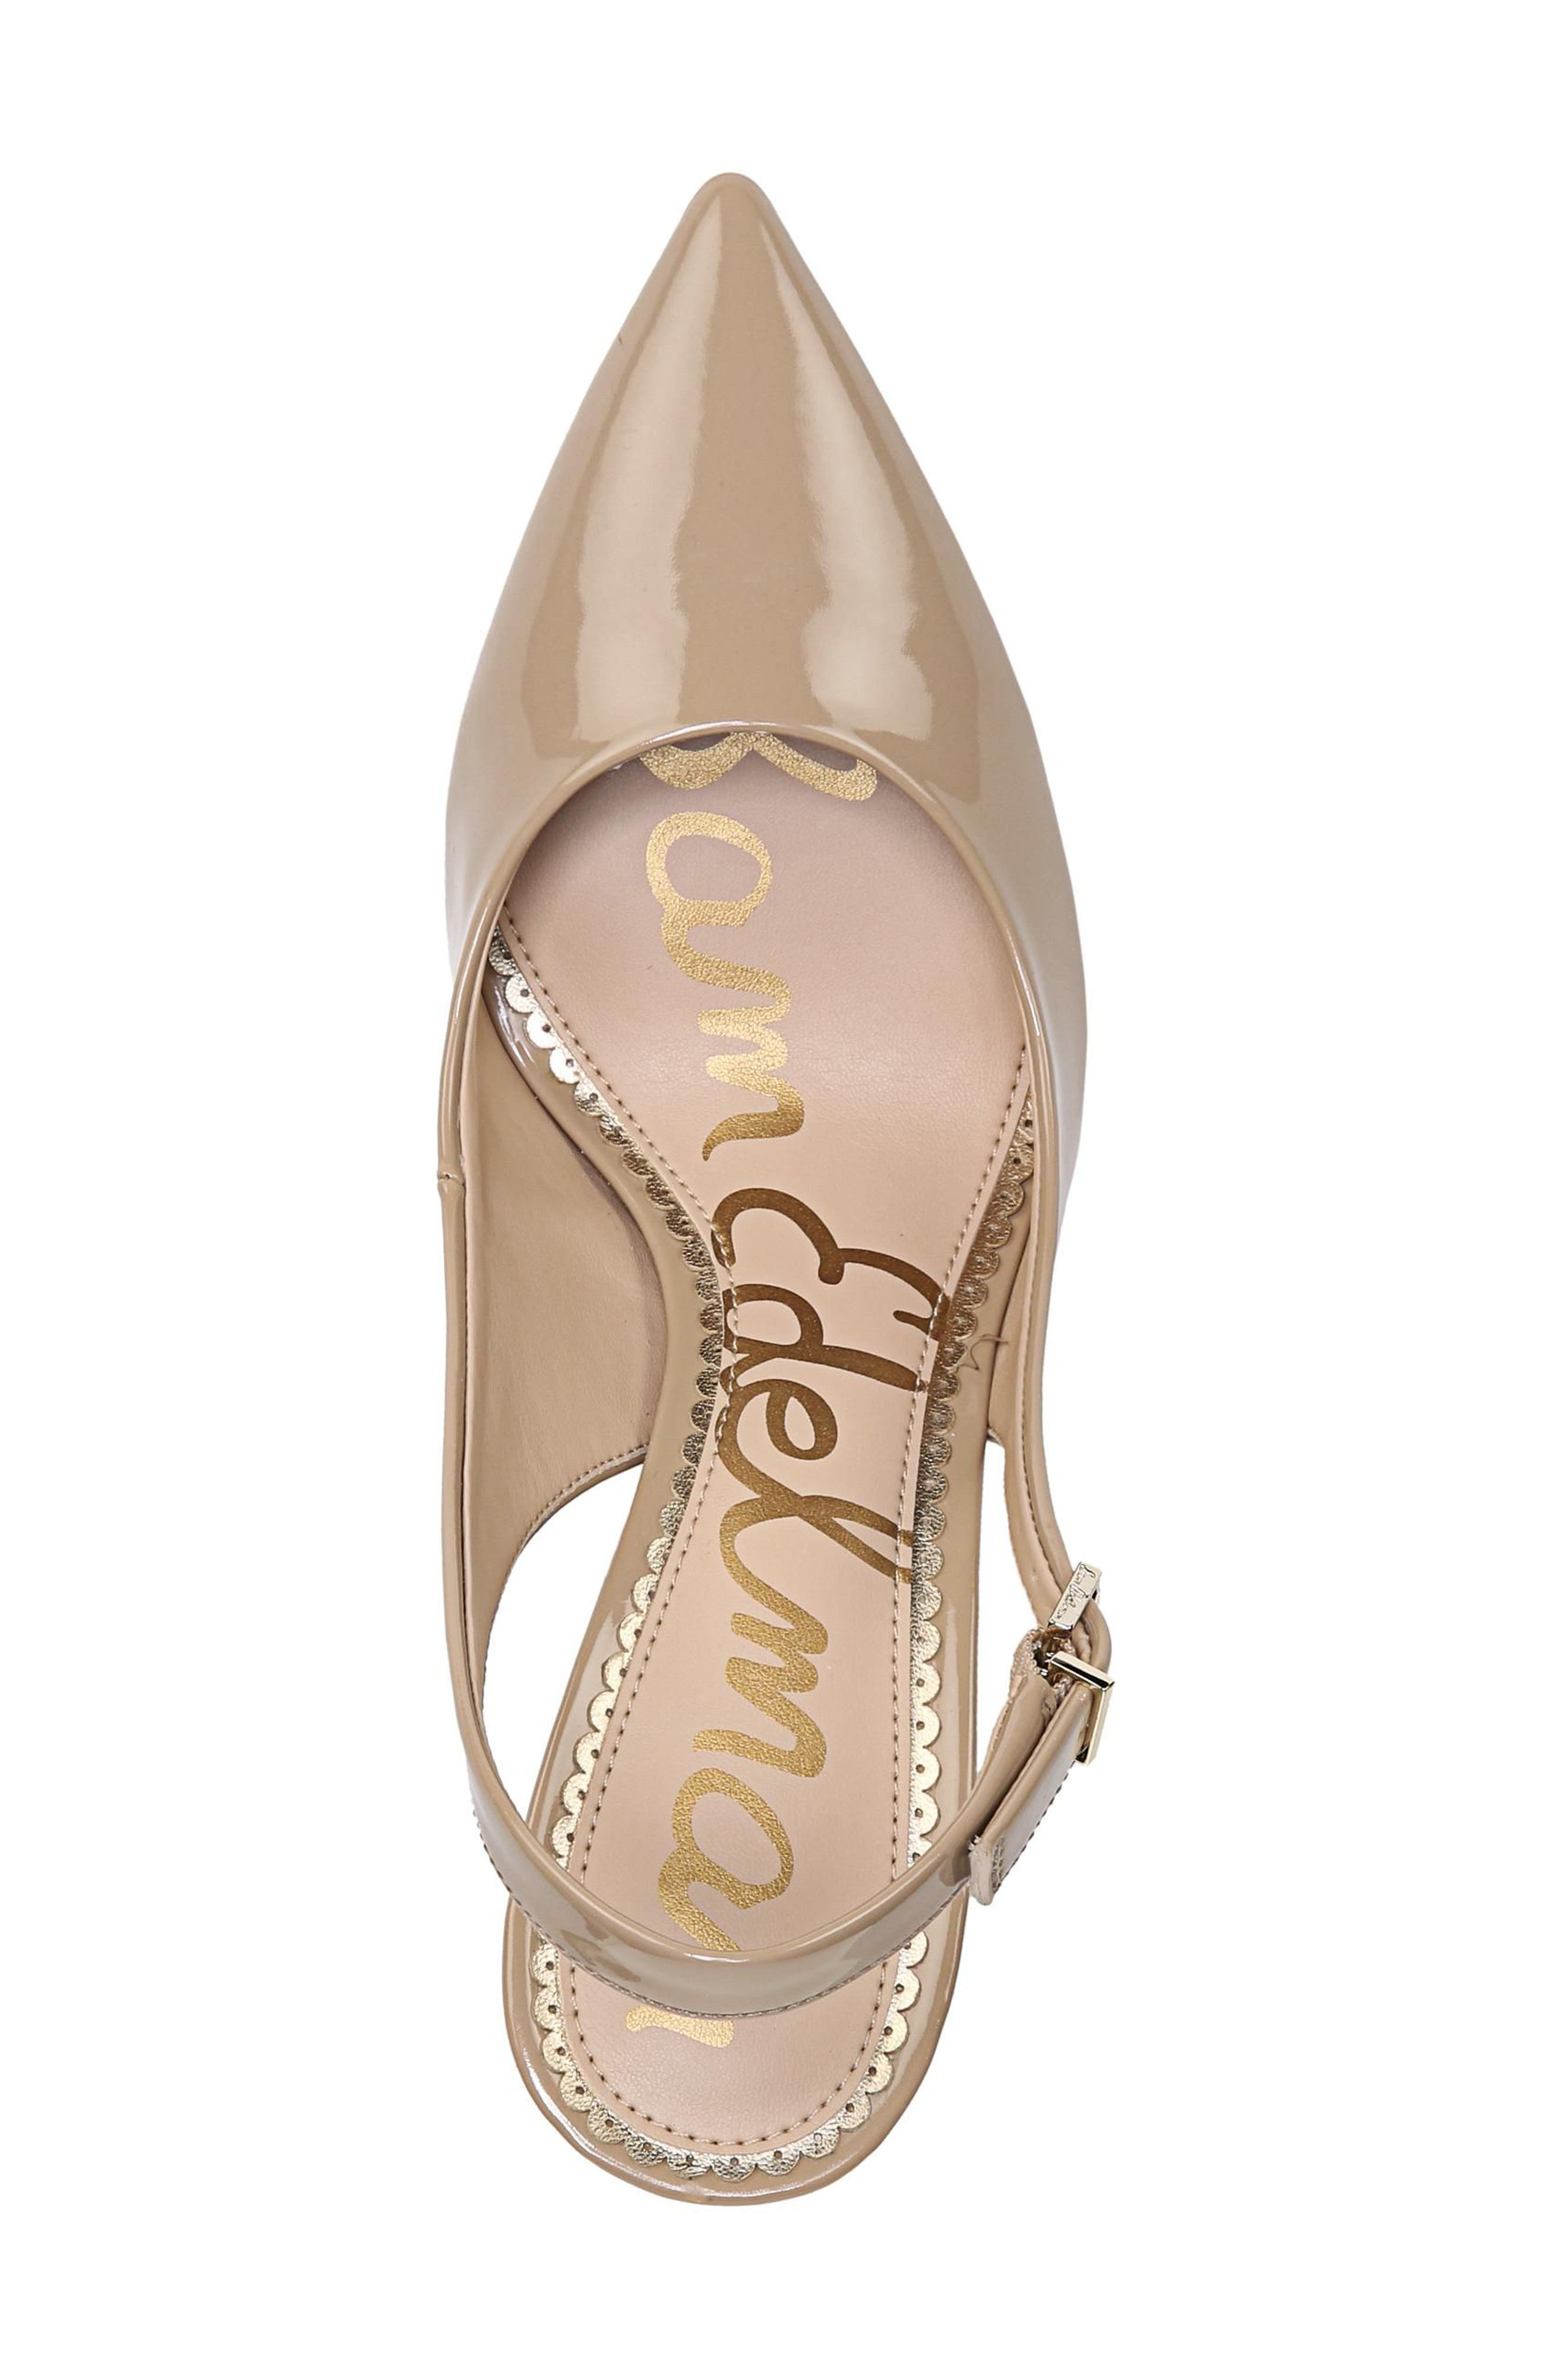 Hastings Slingback Pump,                             Alternate thumbnail 5, color,                             Classic Nude Patent Leather